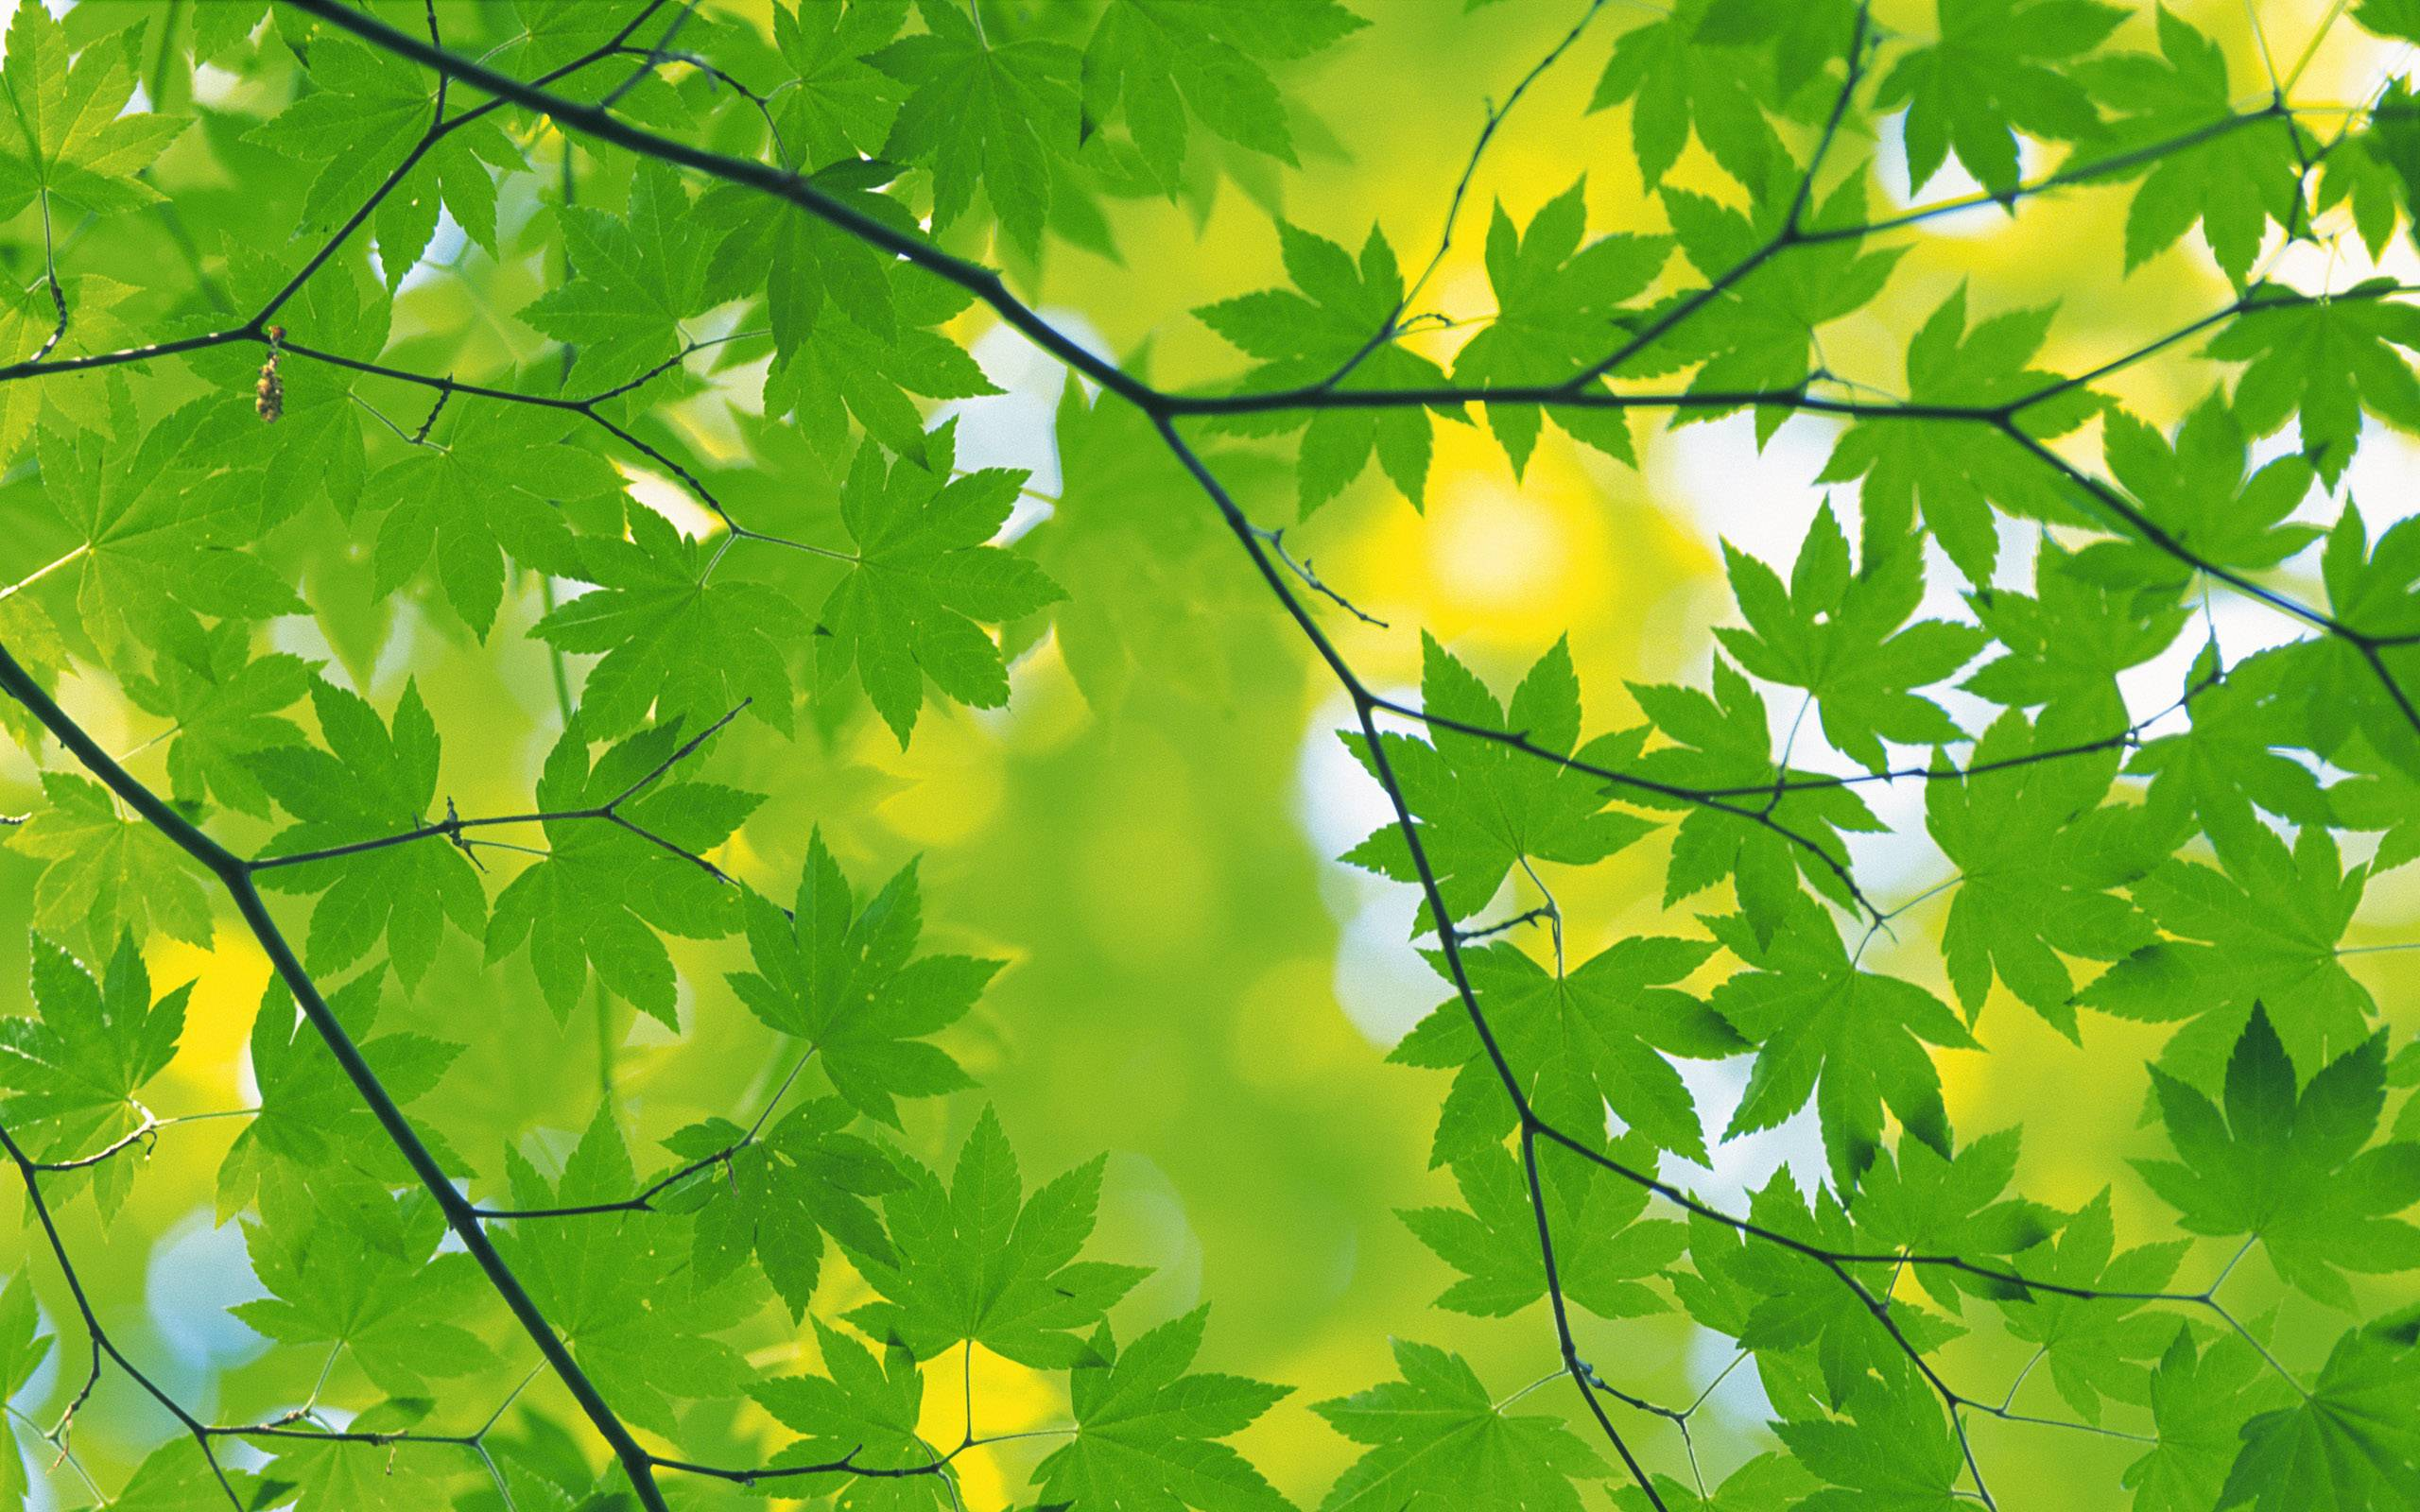 leaf background wallpaper - photo #12